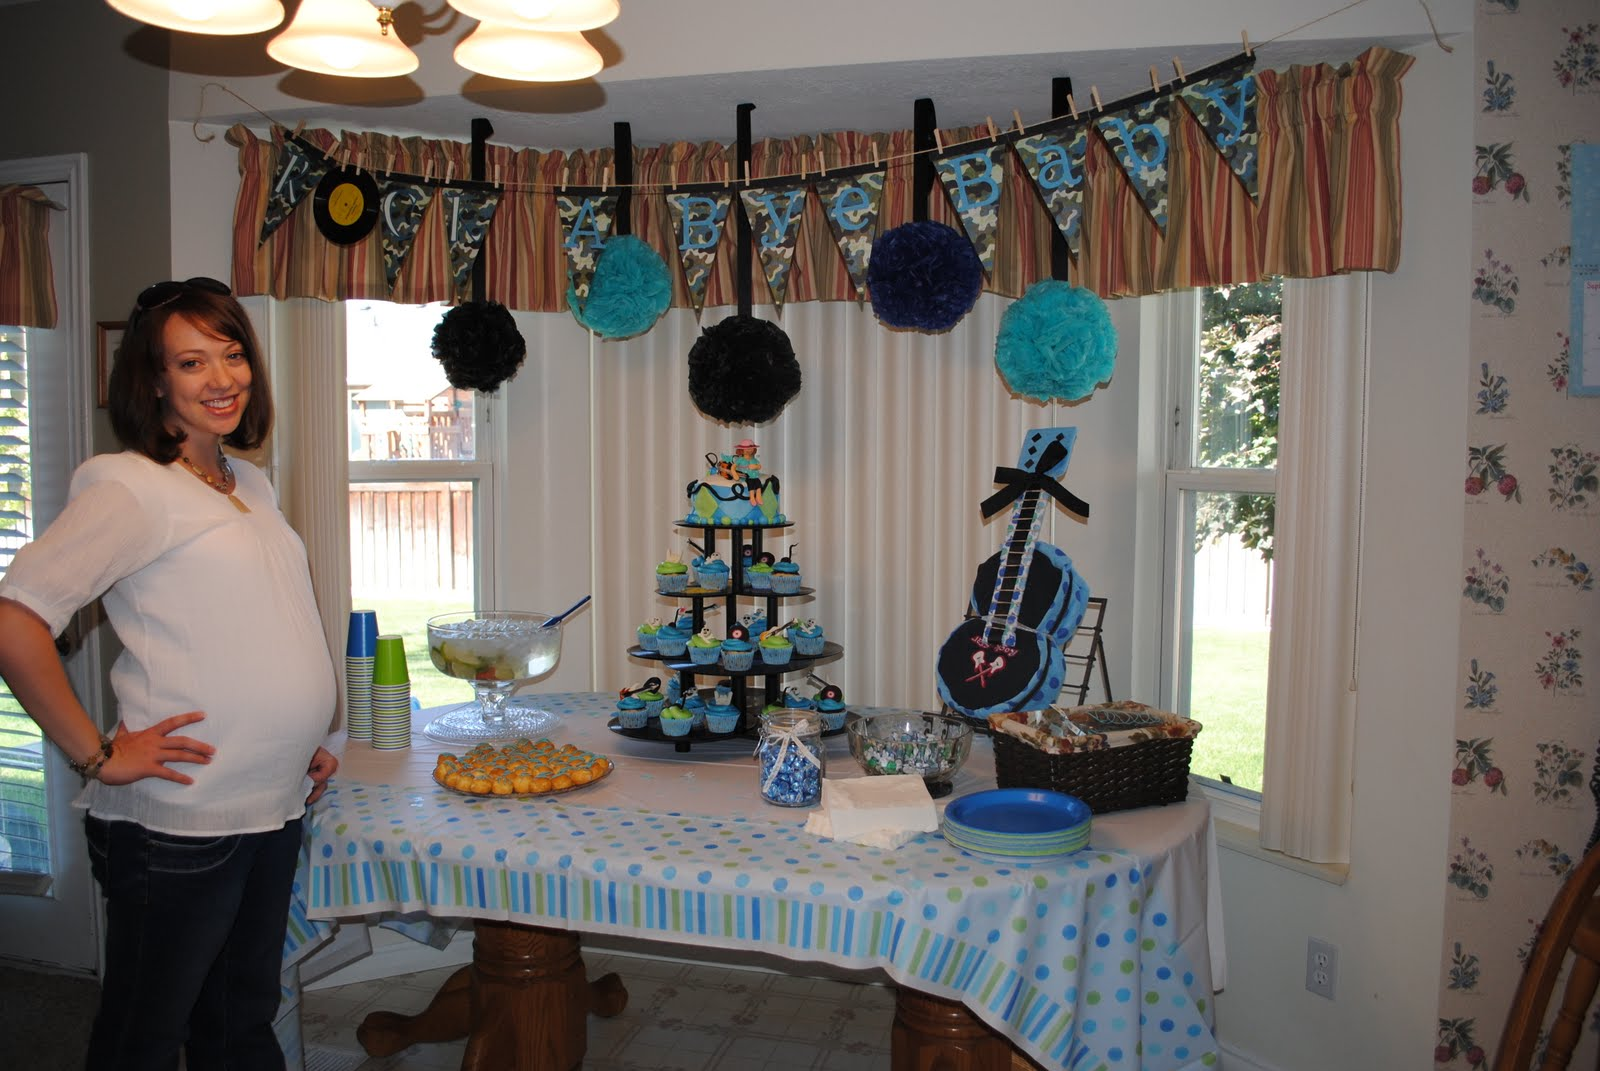 Treaty treats rock a bye baby - Home made baby shower decorations ...